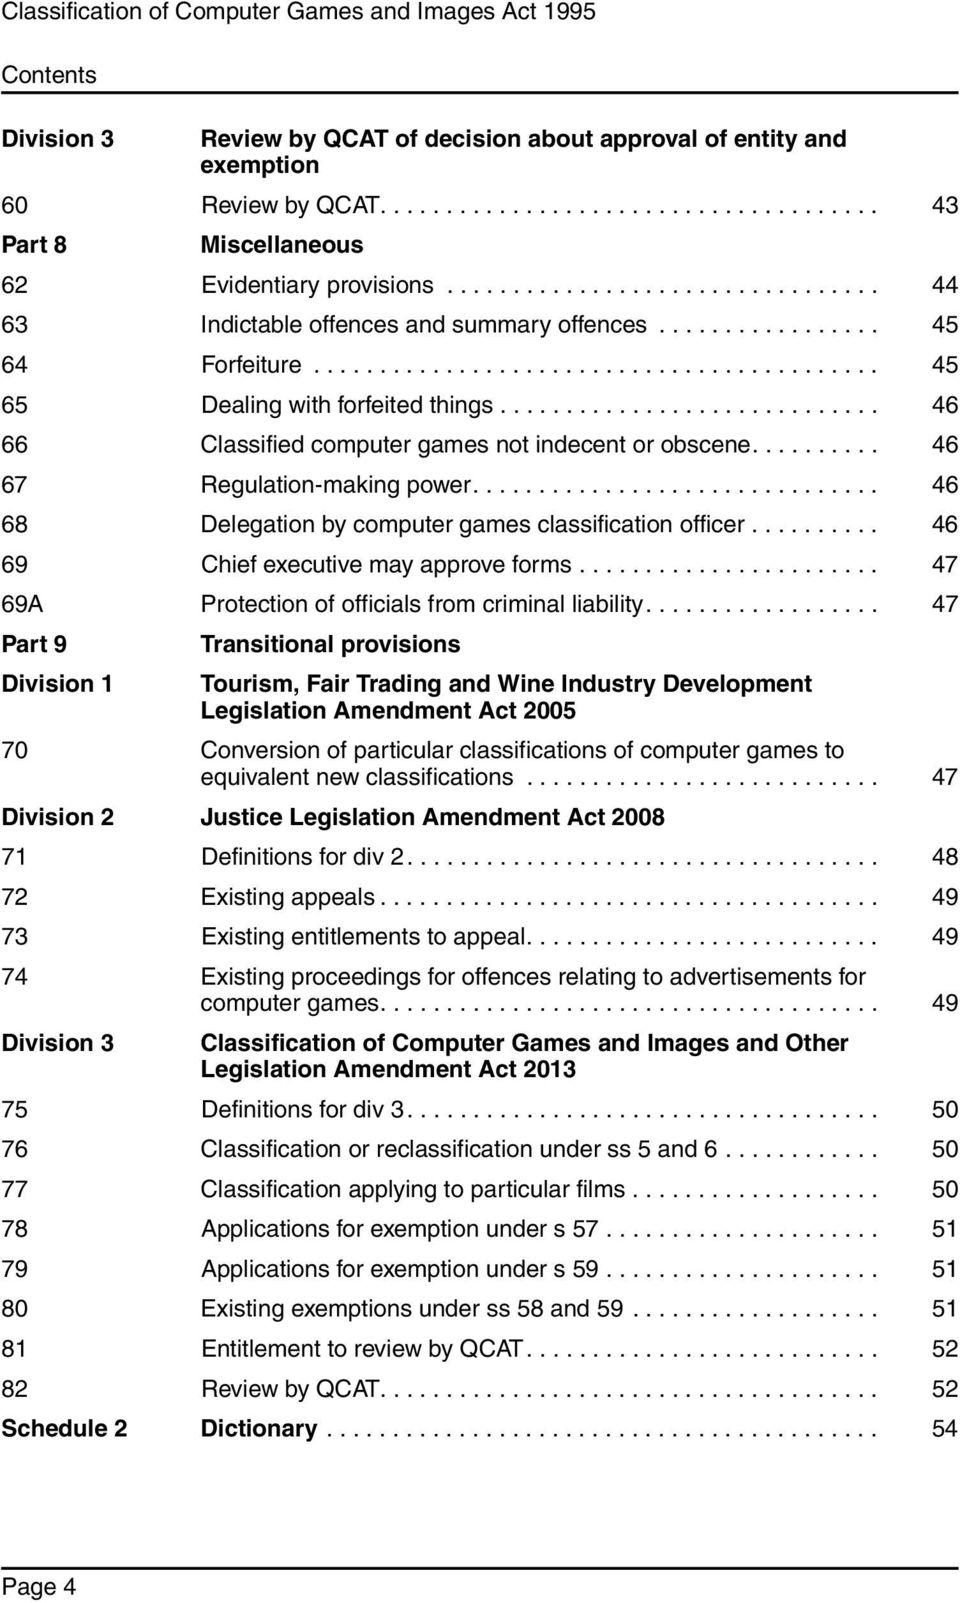 ............................ 46 66 Classified computer games not indecent or obscene.......... 46 67 Regulation-making power............................... 46 68 Delegation by computer games classification officer.